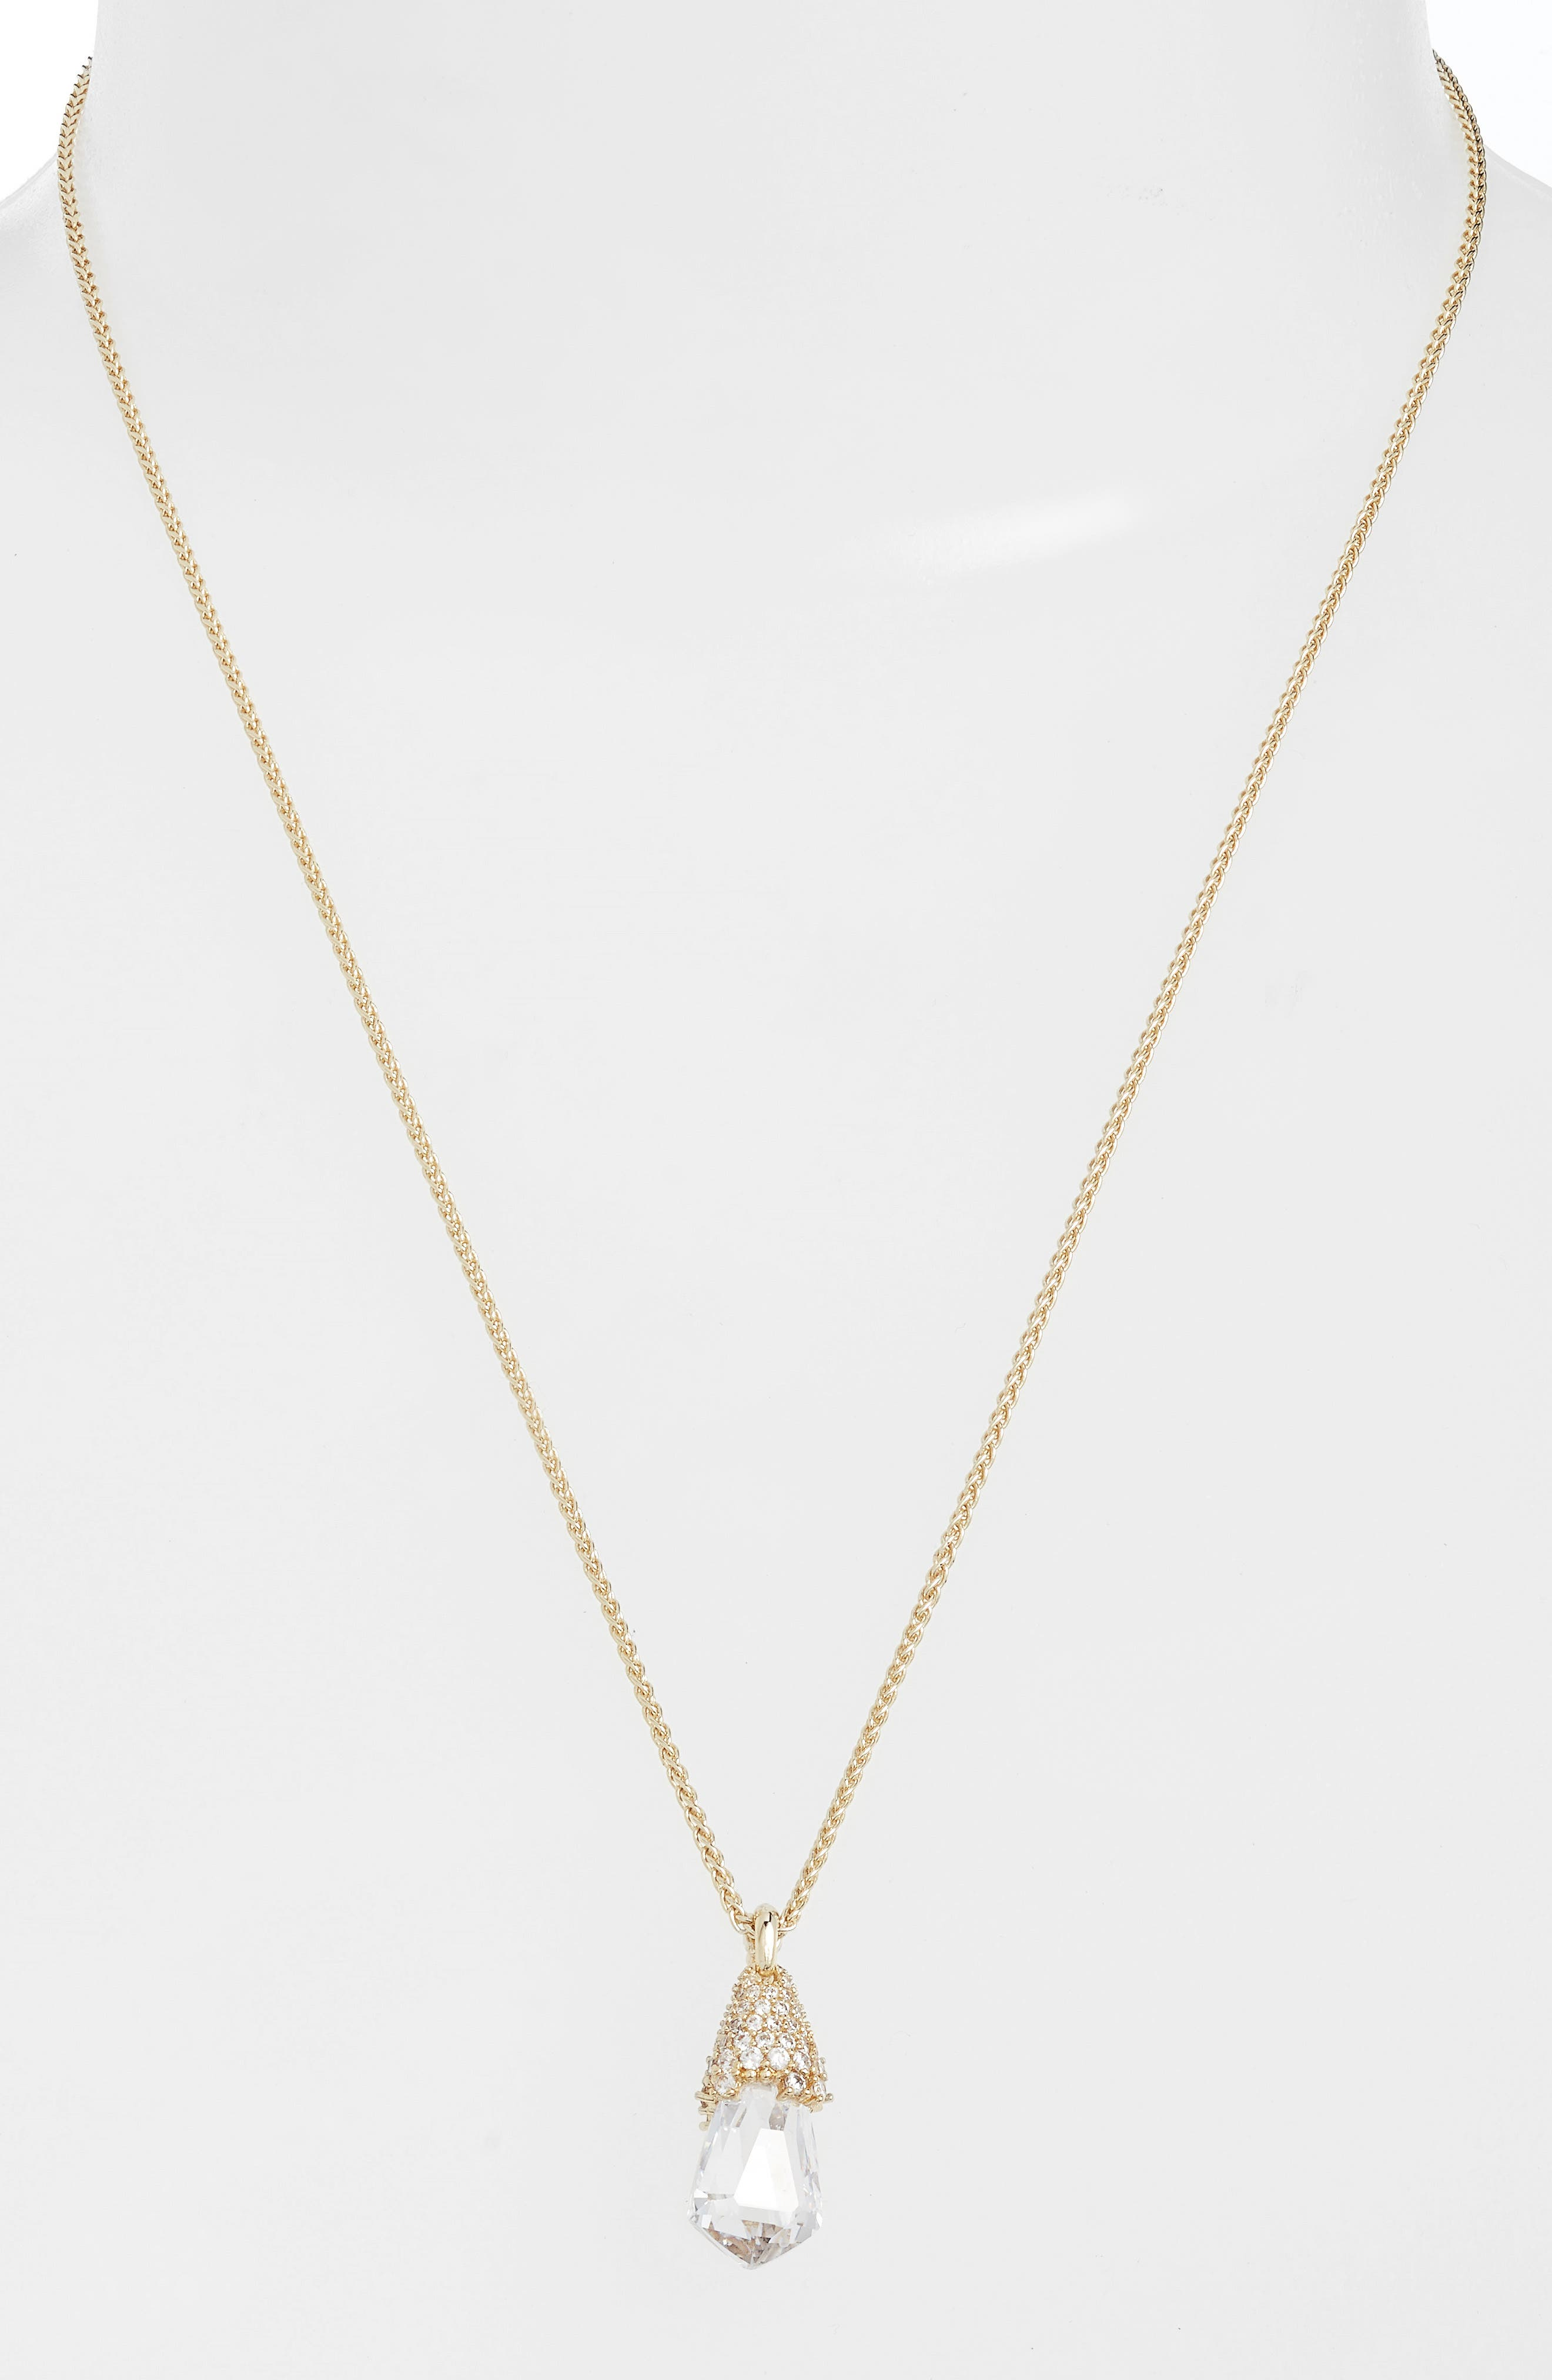 Alternate Image 1 Selected - Kendra Scott Ella Convertible Teardrop Pendant Necklace